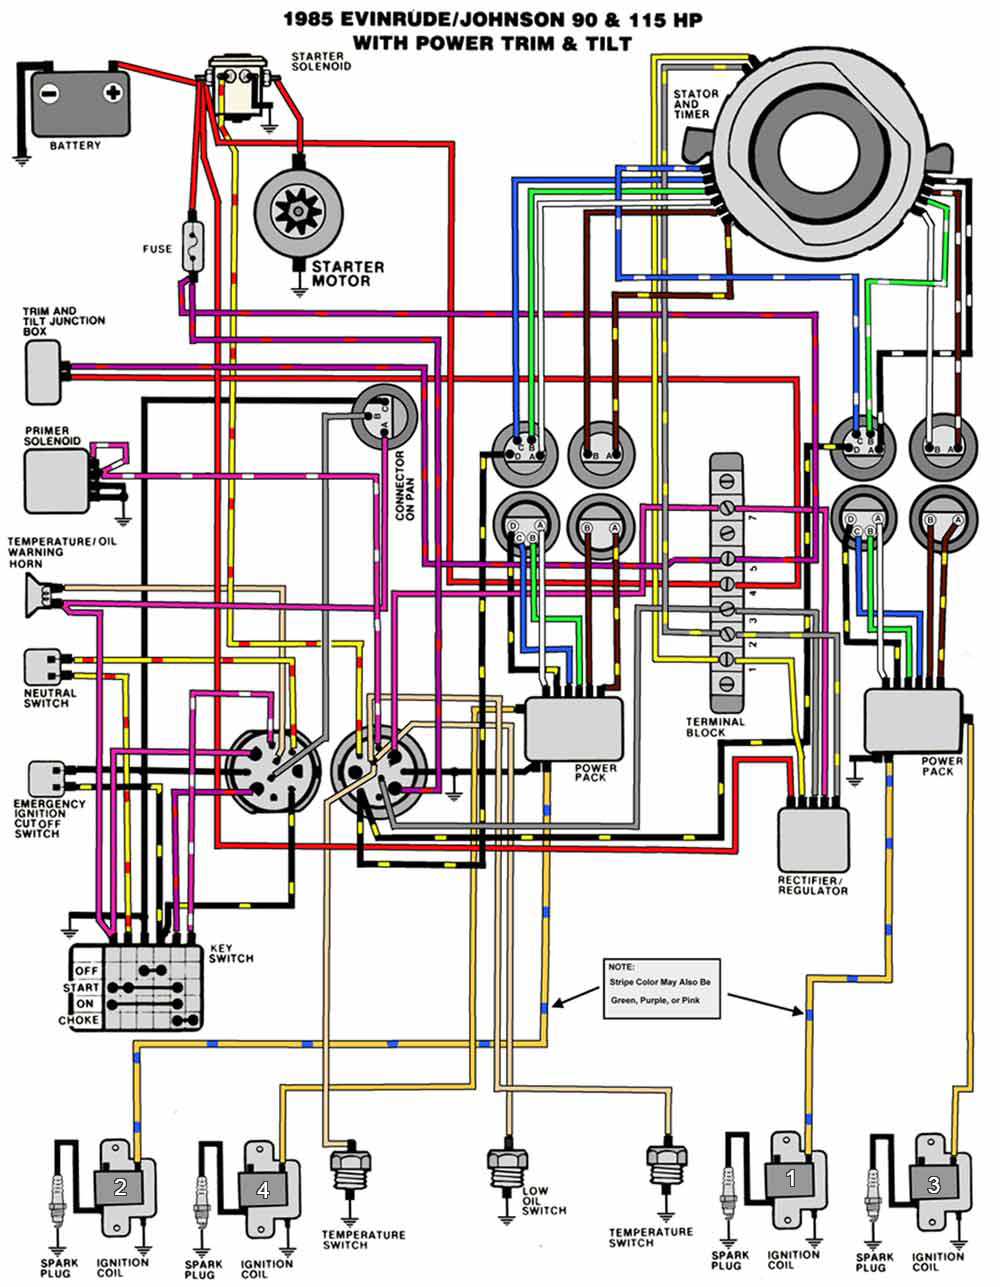 1985_90_115TnT 1998 omc wiring diagram 1998 wiring diagrams 135 HP Evinrude Wiring Diagram at gsmportal.co